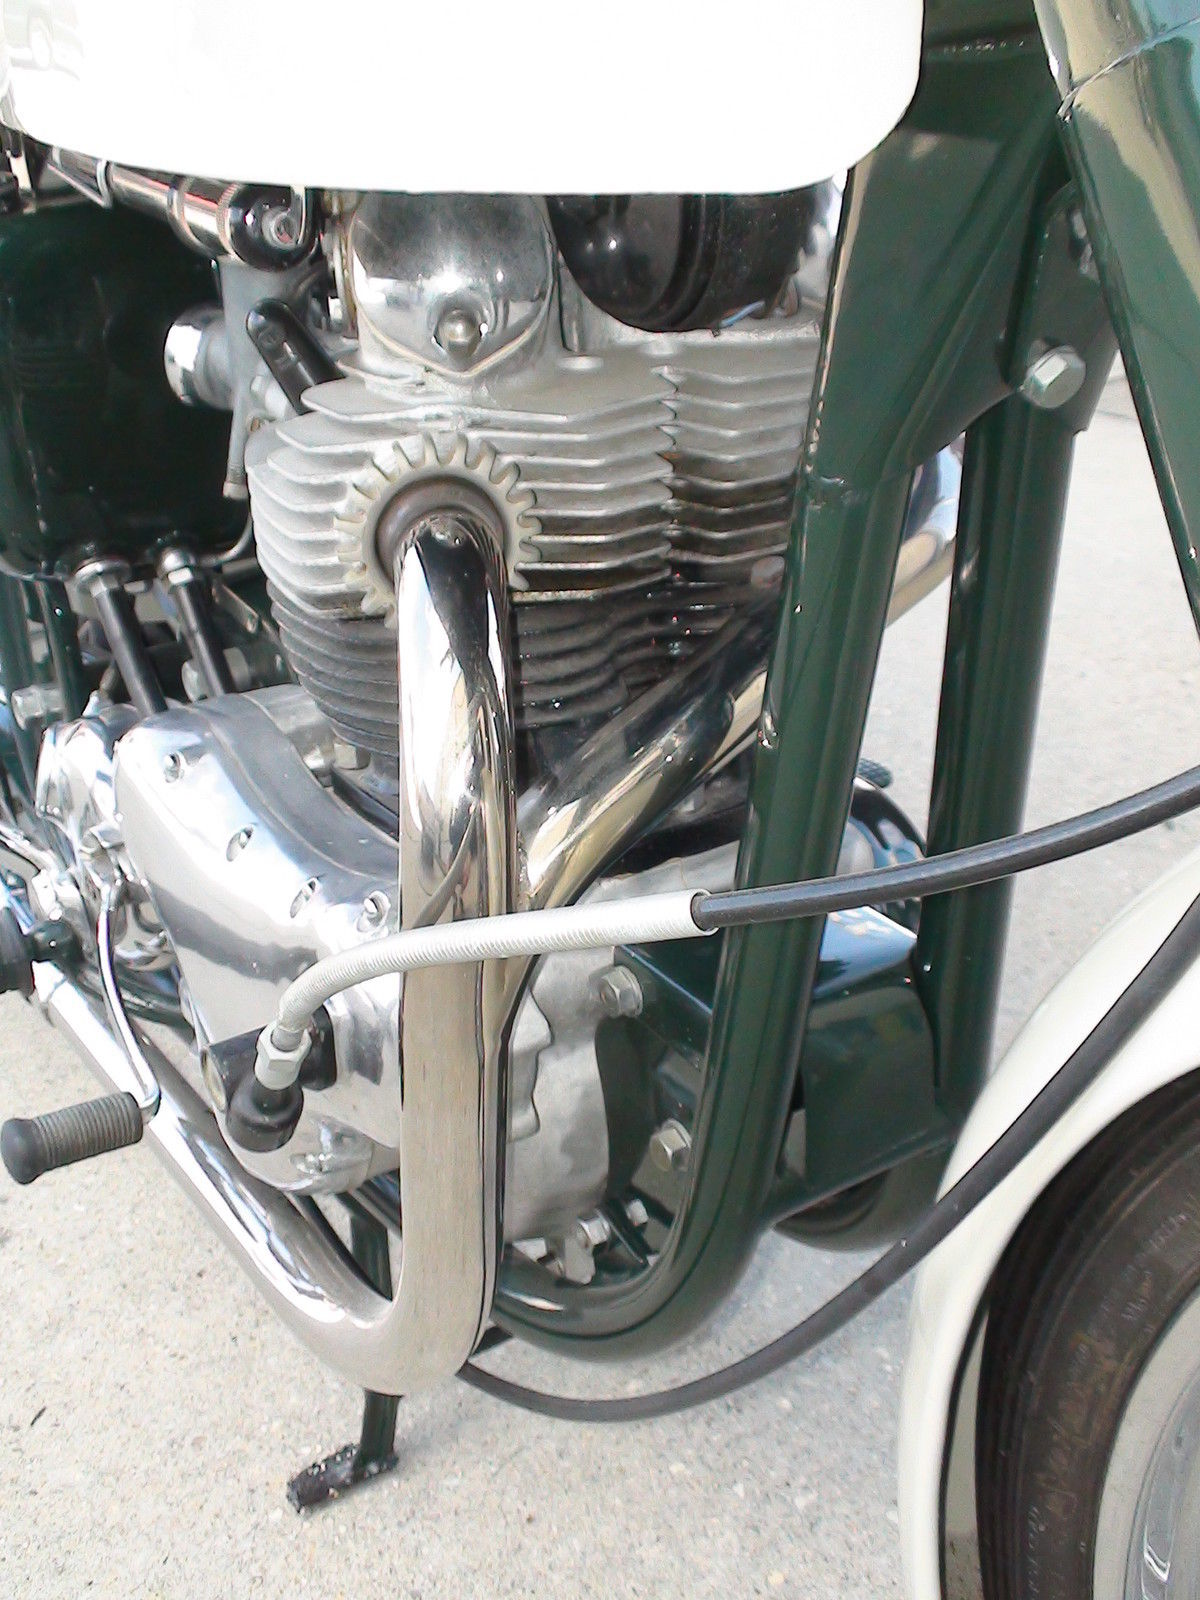 Norton Dominator 88 - 1960 - Exhaust, Frame, Cables and Rocker.